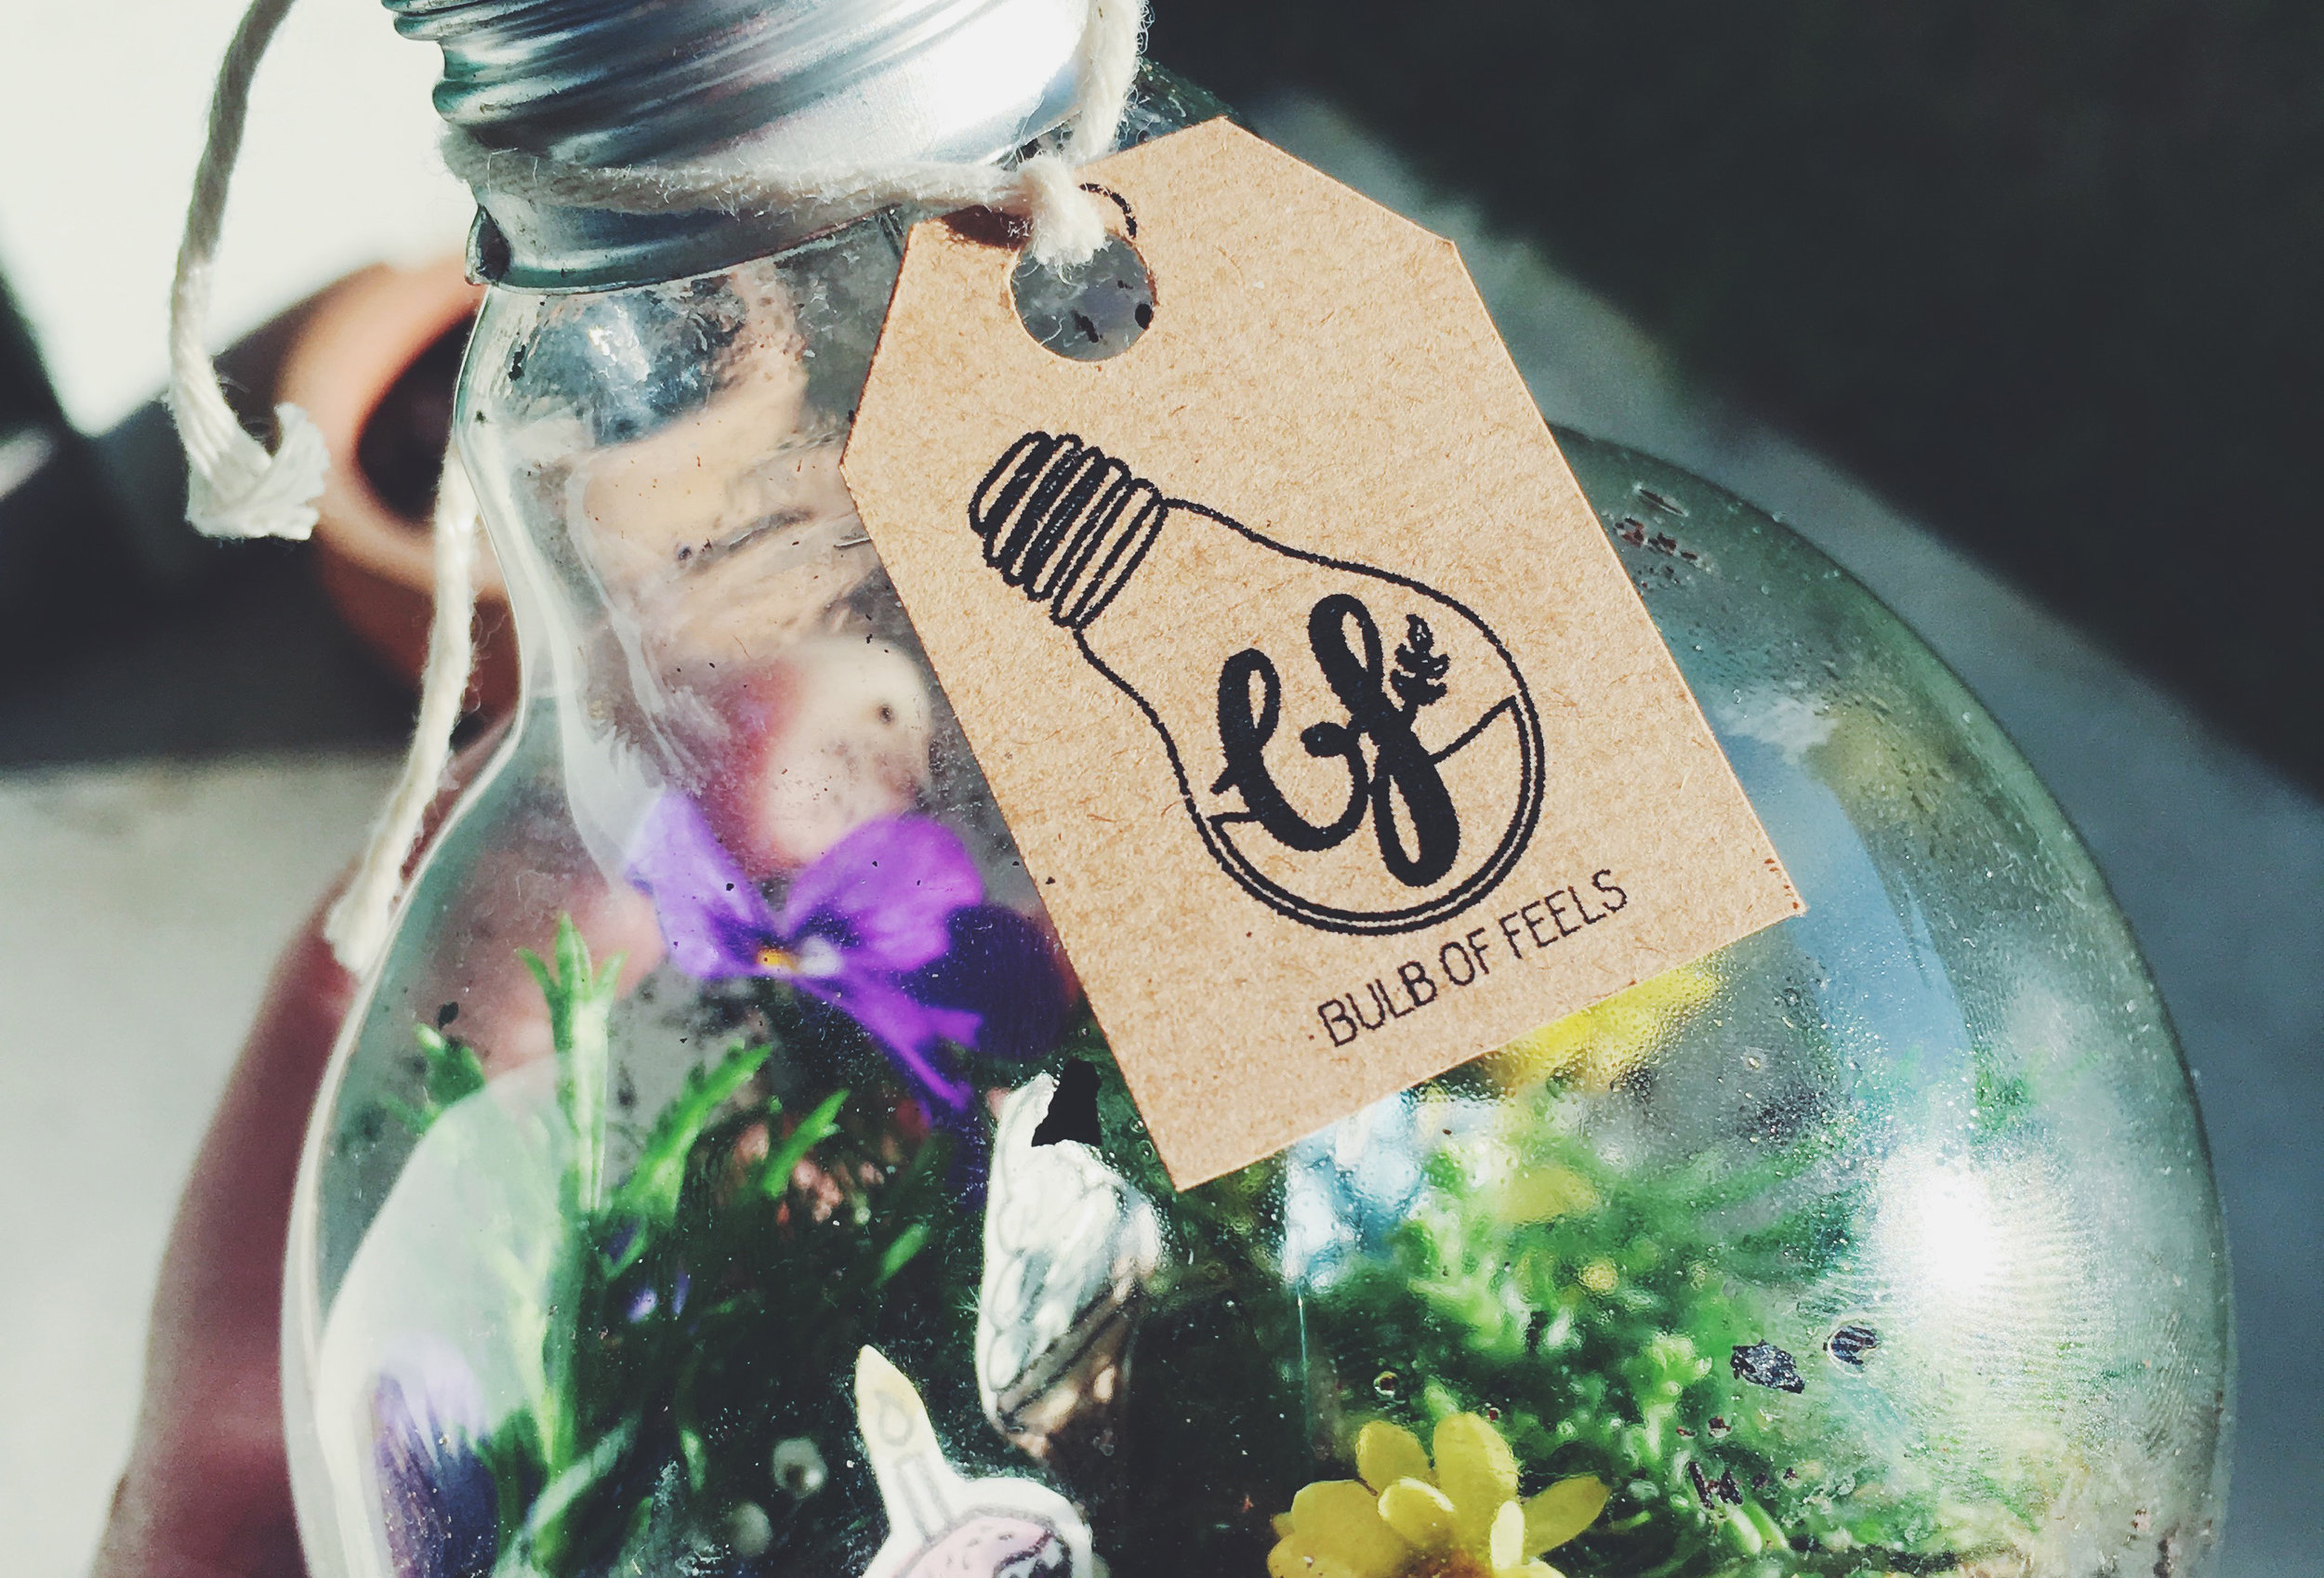 Bulb of Feels - The aim of this assignment was to develop a creative product that applied creative strategies, such as synetics. The purpose was to essentially create a terrarium that incorporates plants and images that associate to specific emotions, in order to address the issue of lifeless workspaces. A logo, business card, packaging, labels, and letterhead were then designed to brand the 'Bulb of Feels' light bulb terriariums.